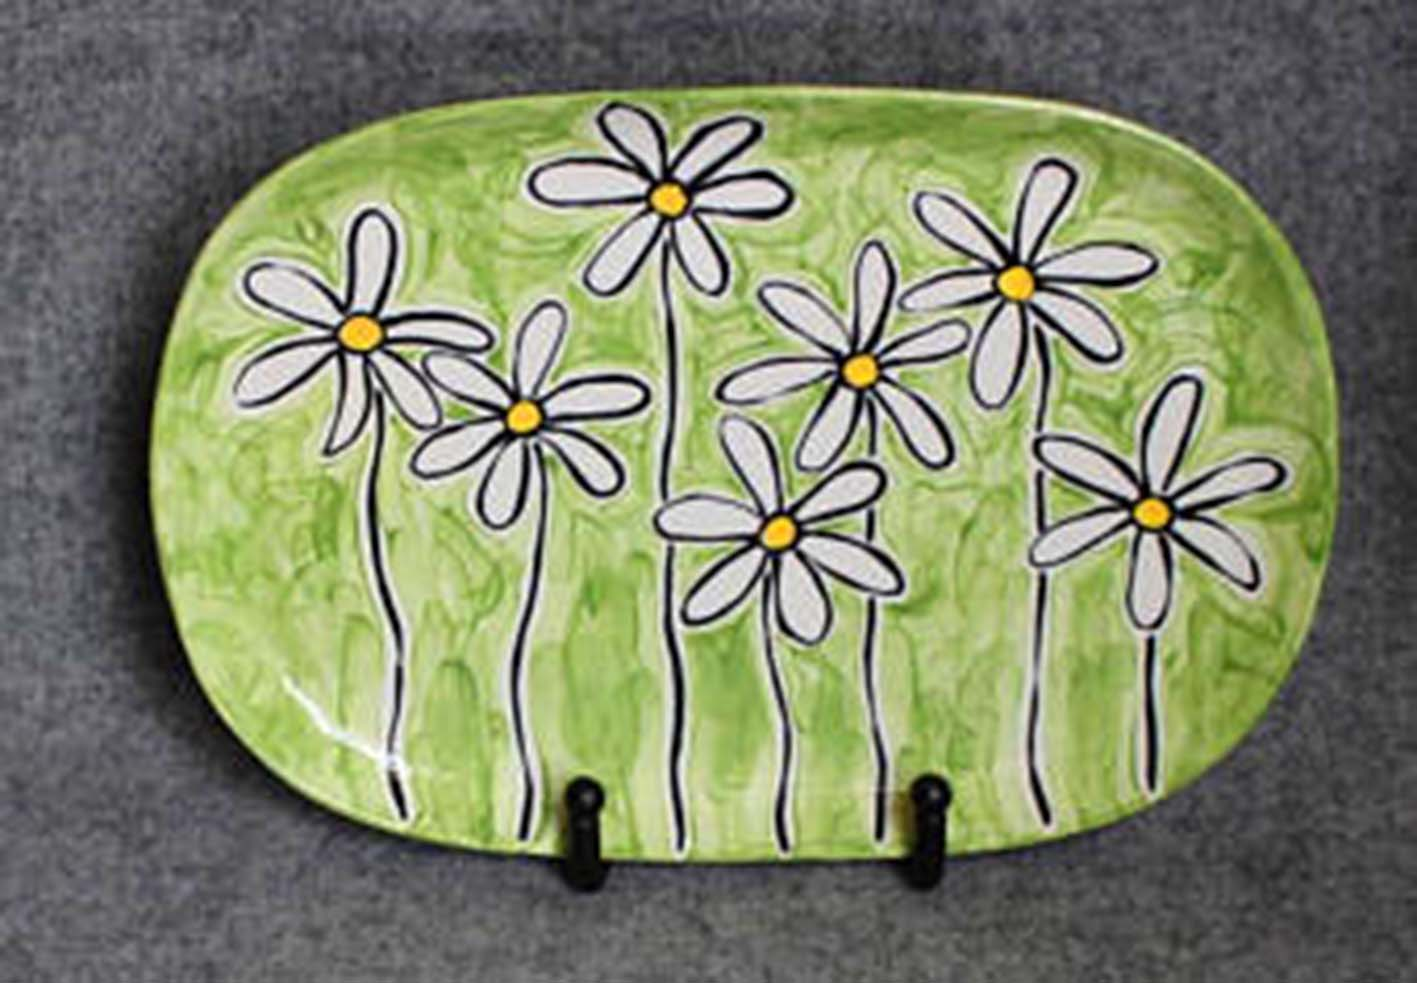 Pottery Paint Night - Spring Flower Plates